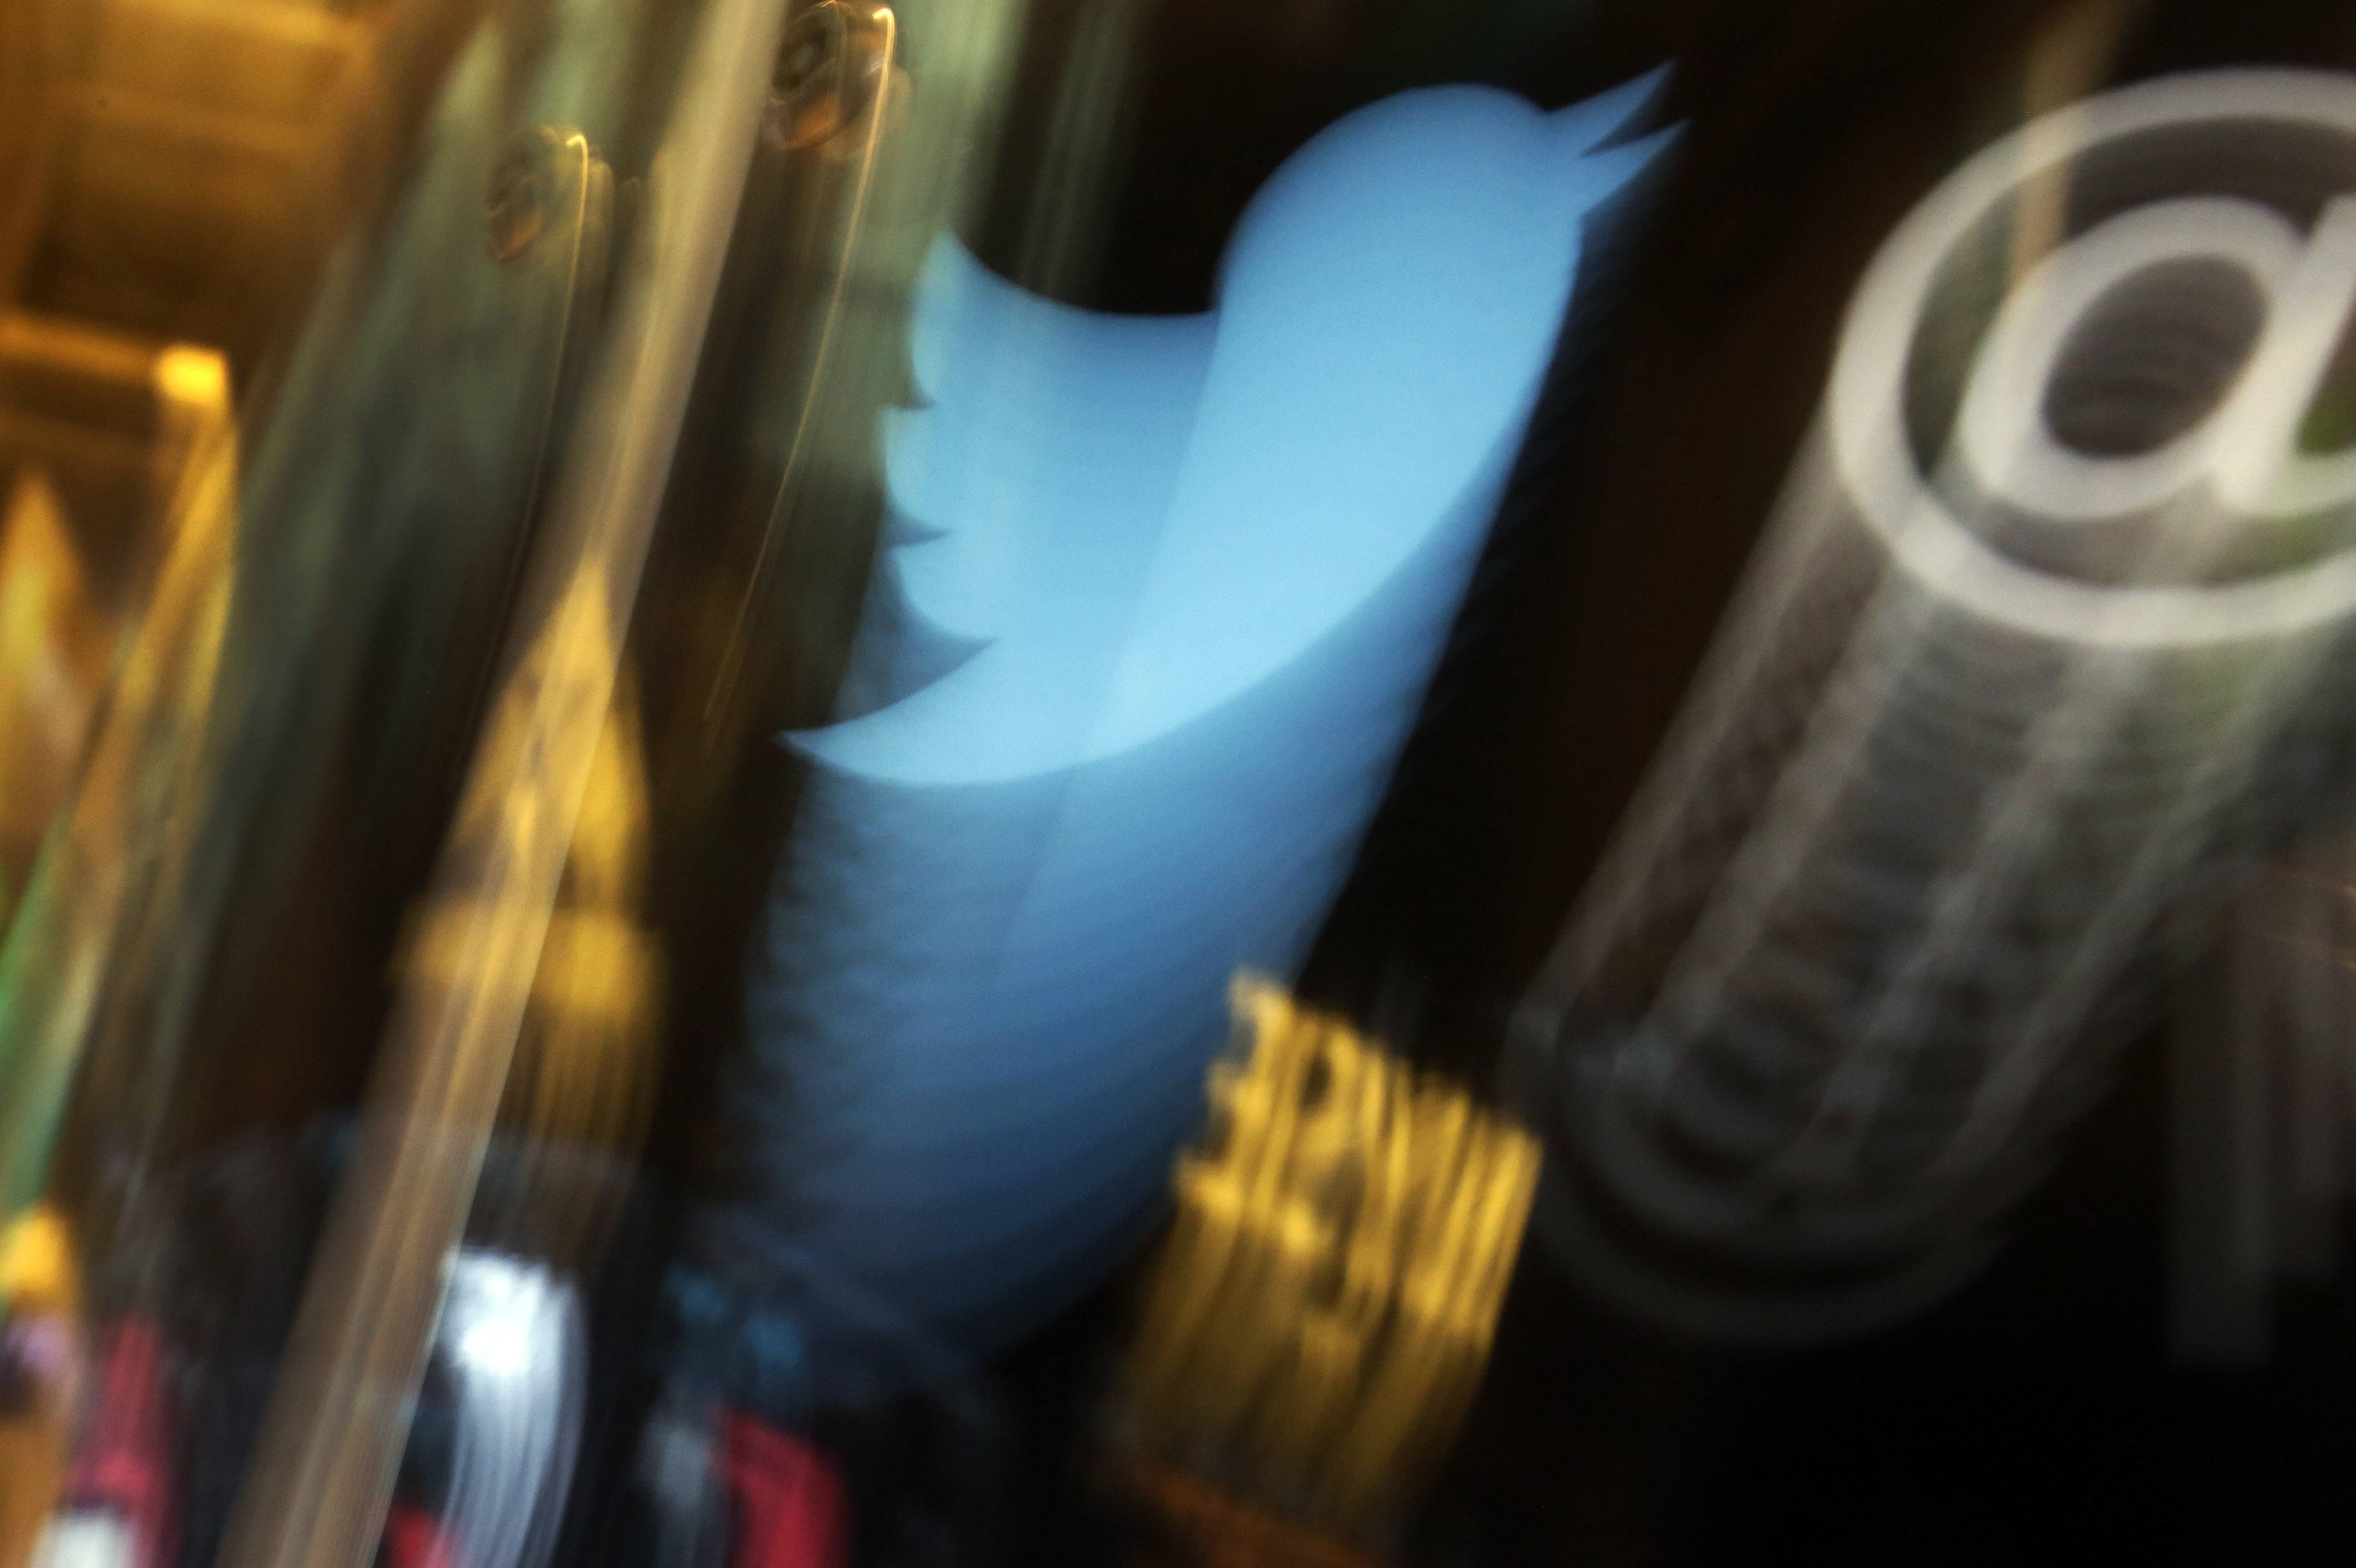 Twitter announced Tuesday that it's adding a tool that makes it easy to thread tweets together, giving users more space for thoughtful commentary, unhinged rants and everything in between.